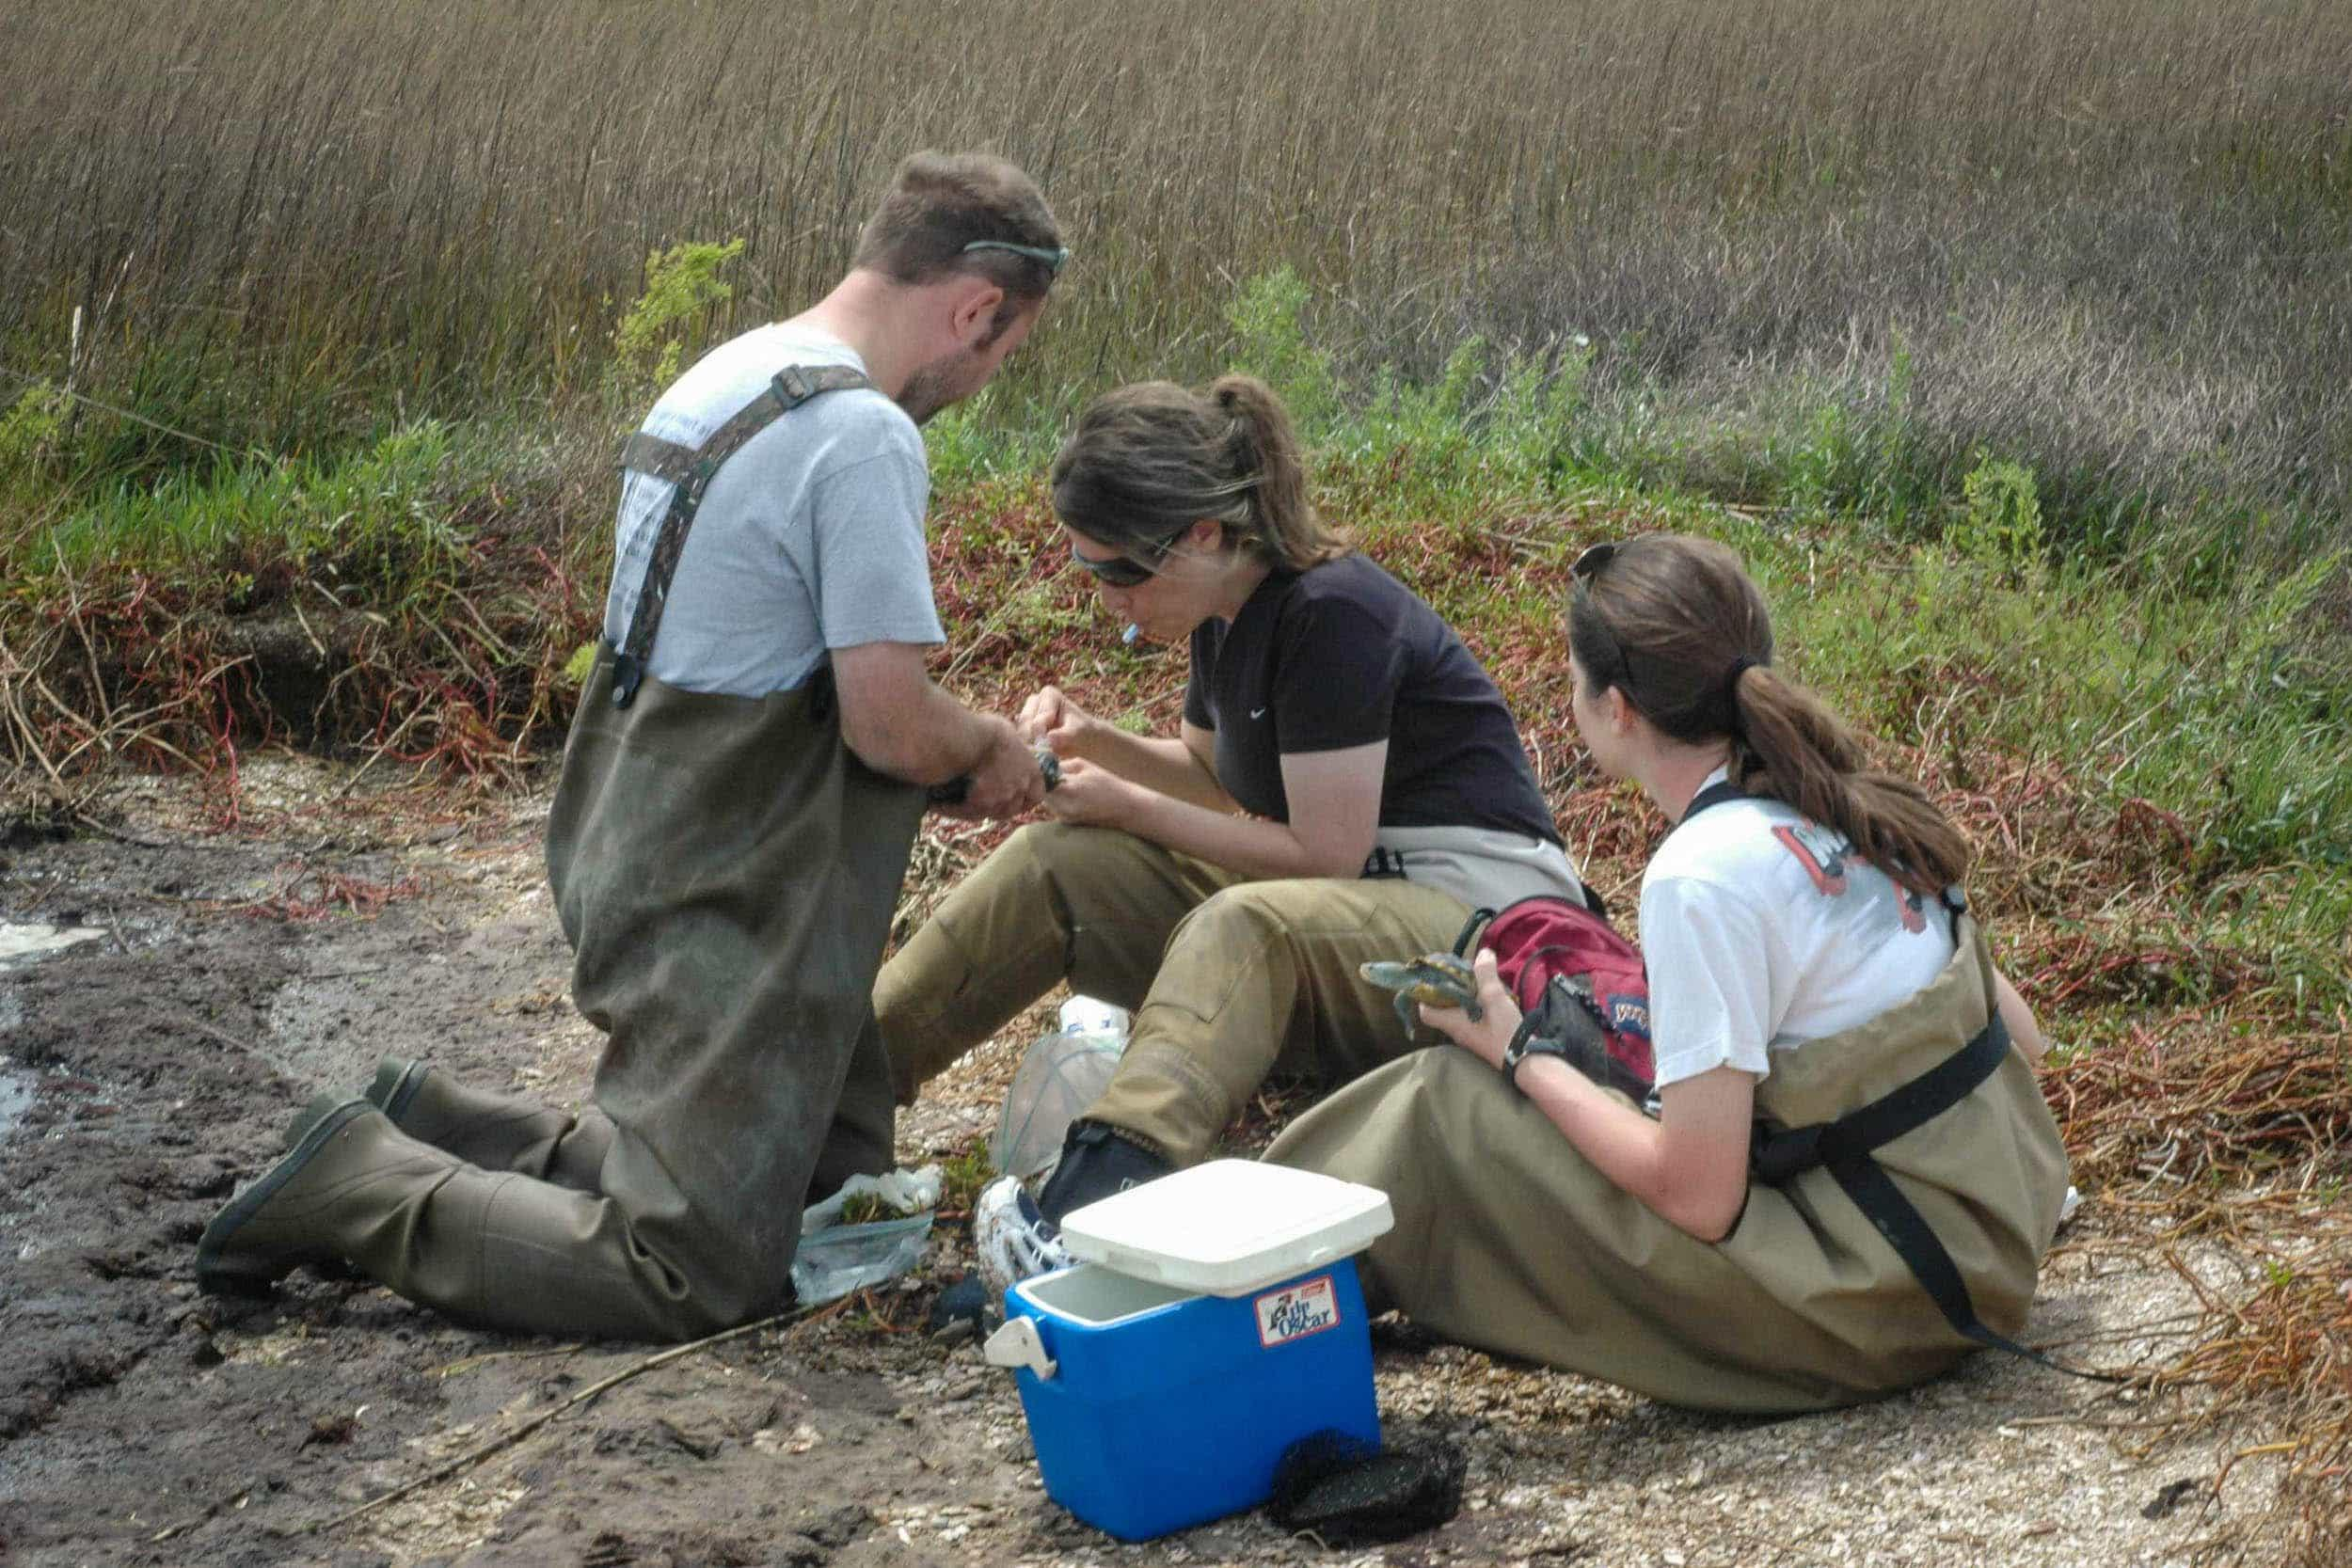 Paul Crump (Houston Zoo), Rachel Rommel (Houston Zoo), and Kelli Haskett (EIH research assistant) prepare to draw blood from two male terrapins.